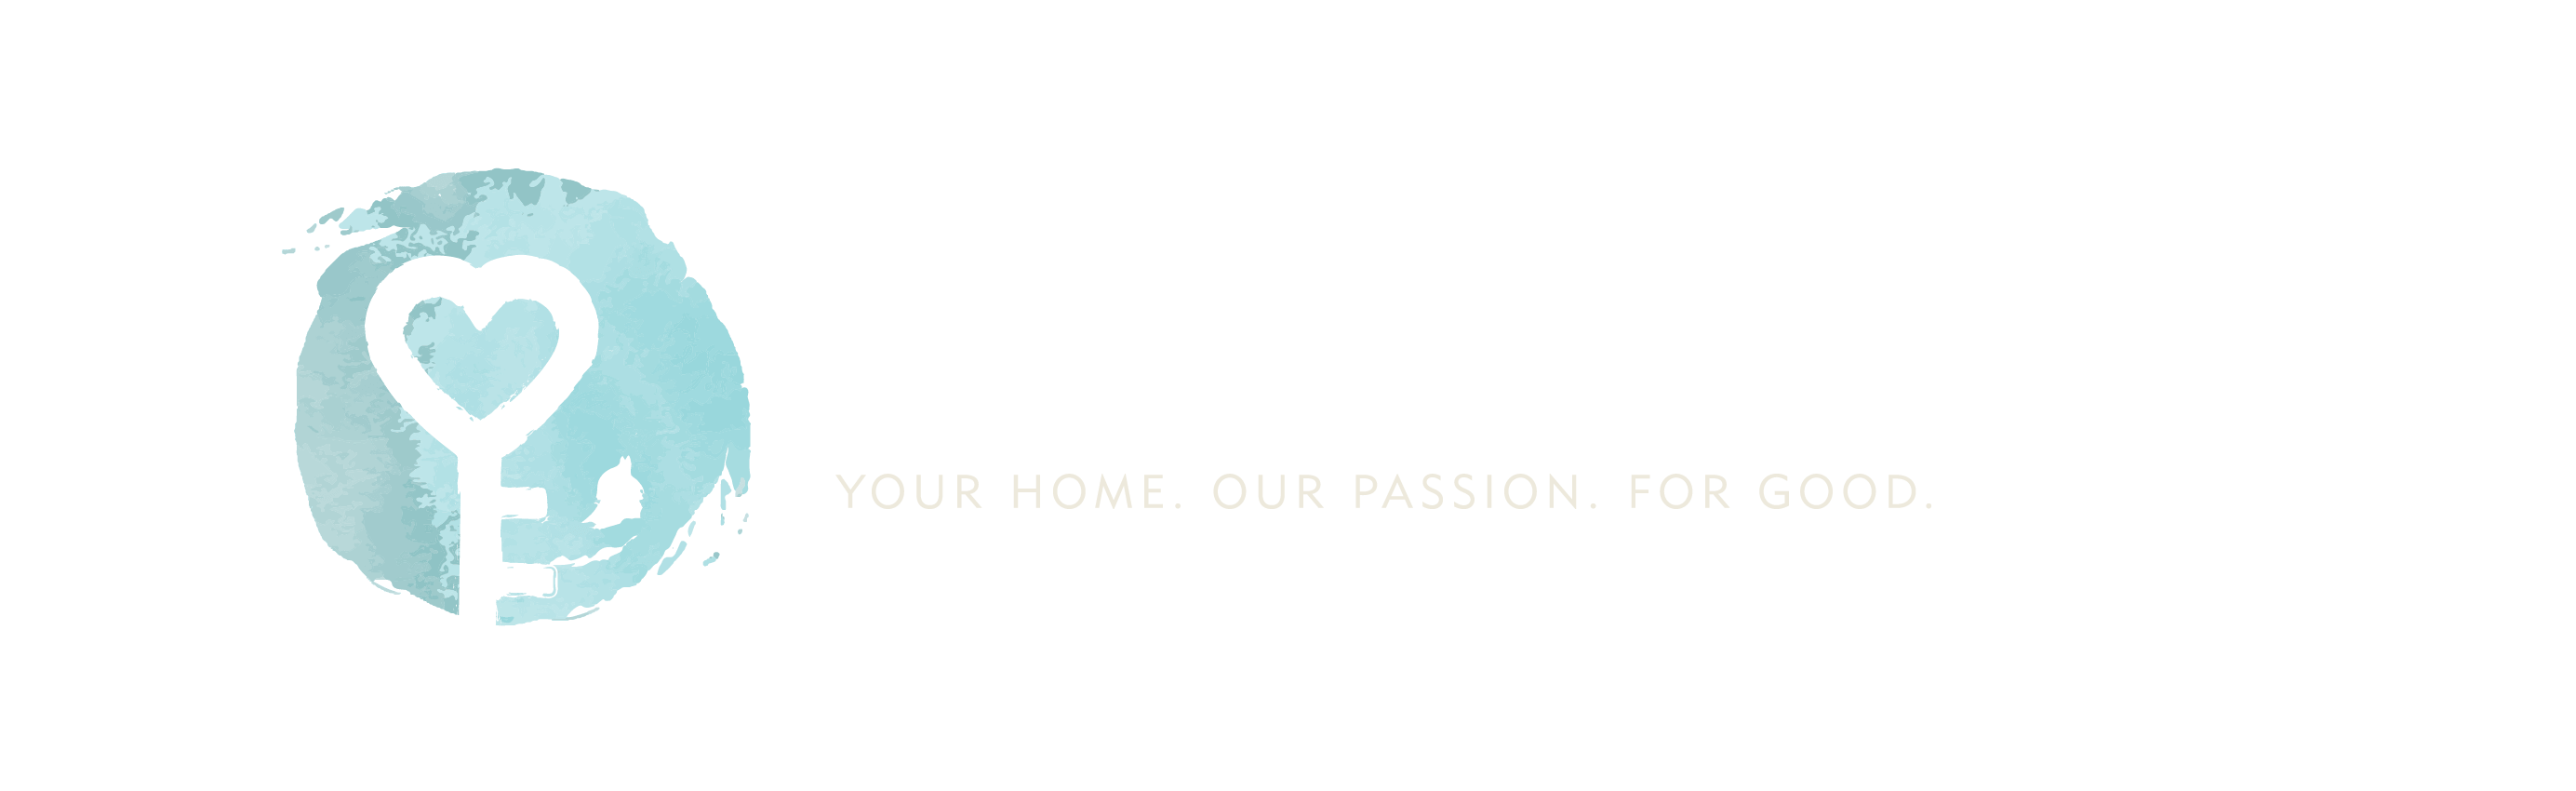 Your Home. Our Passion. For Good